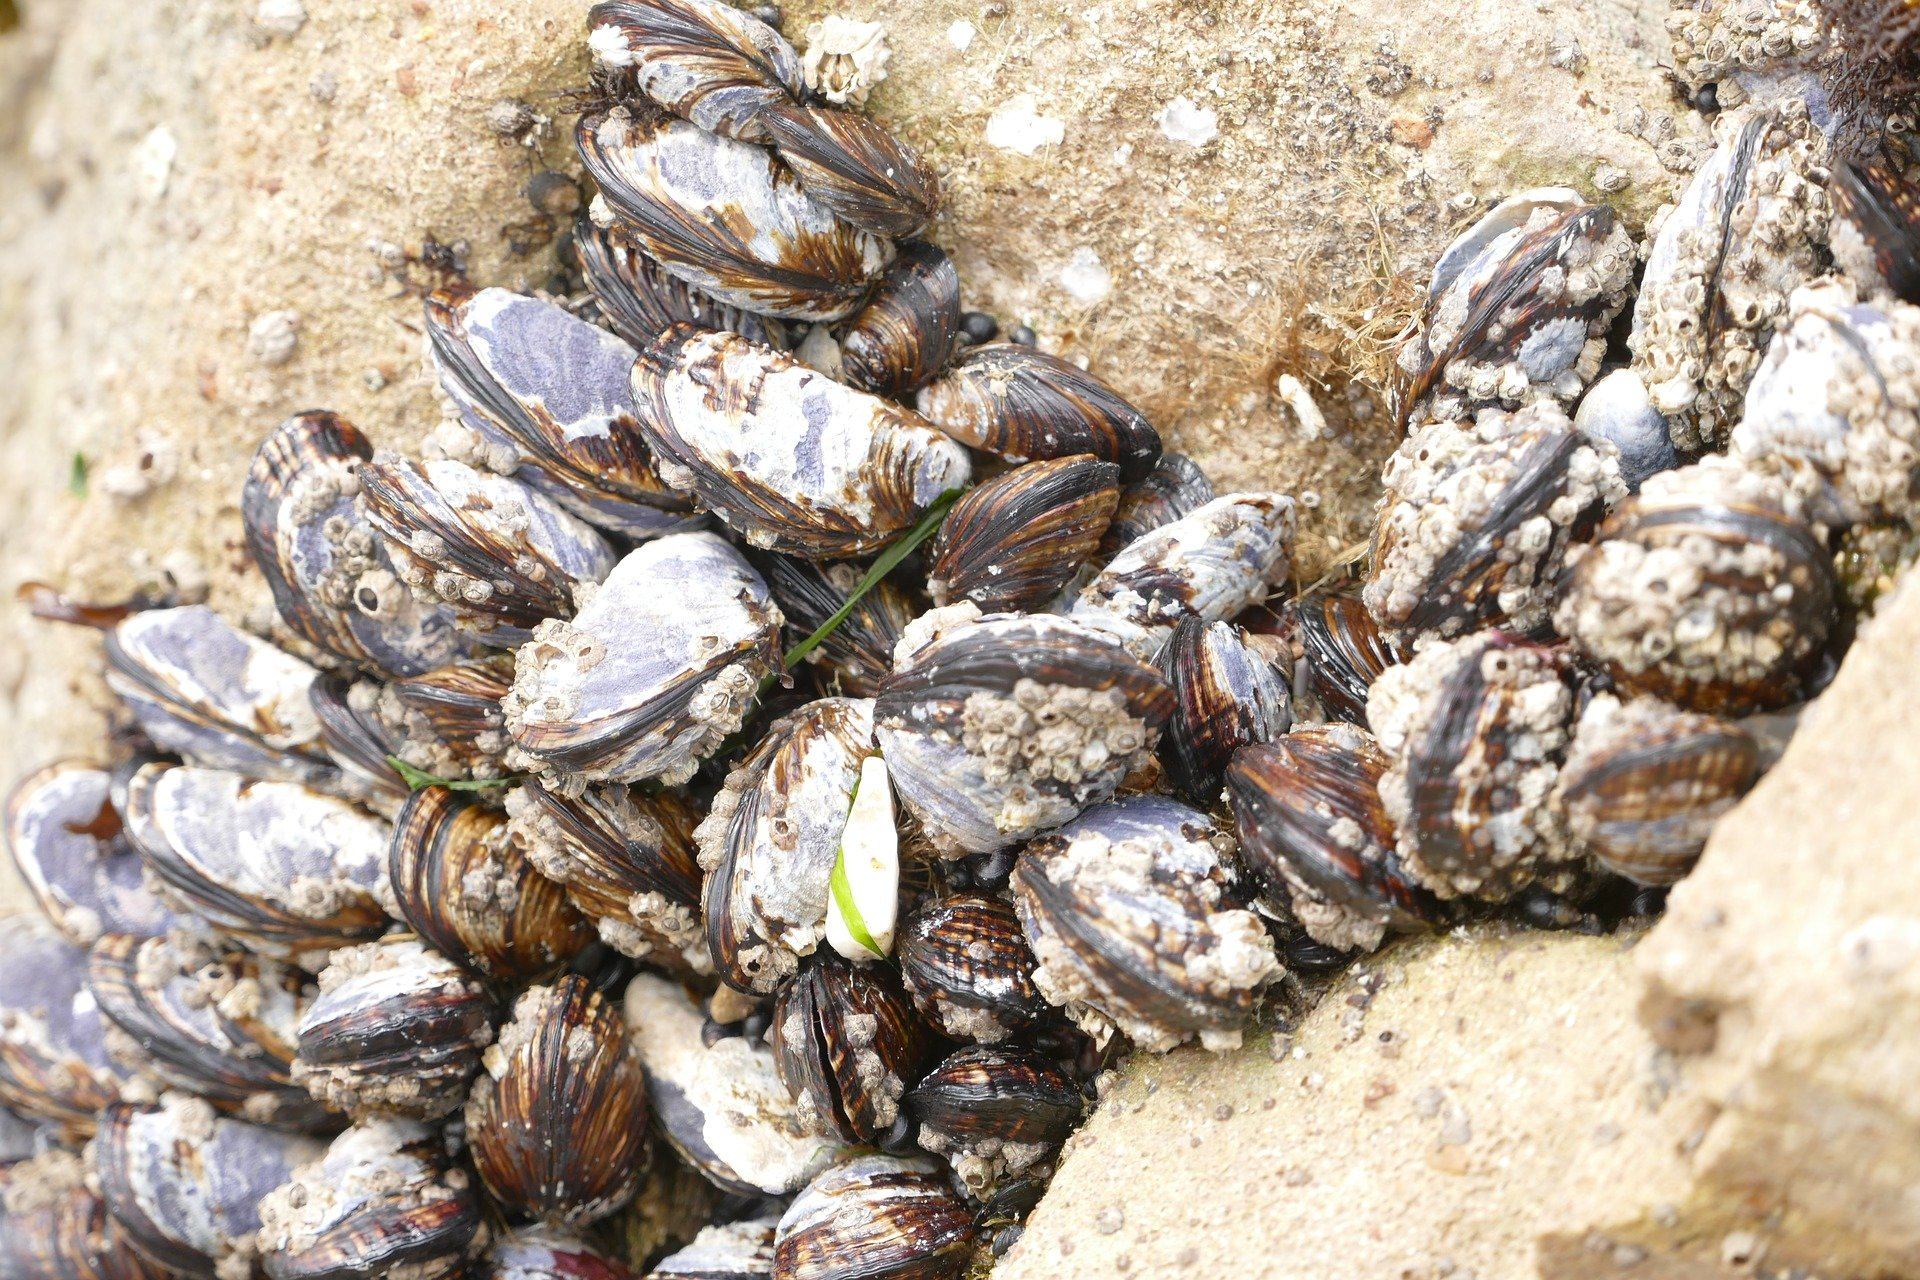 How much is a clam worth to a coastal community?